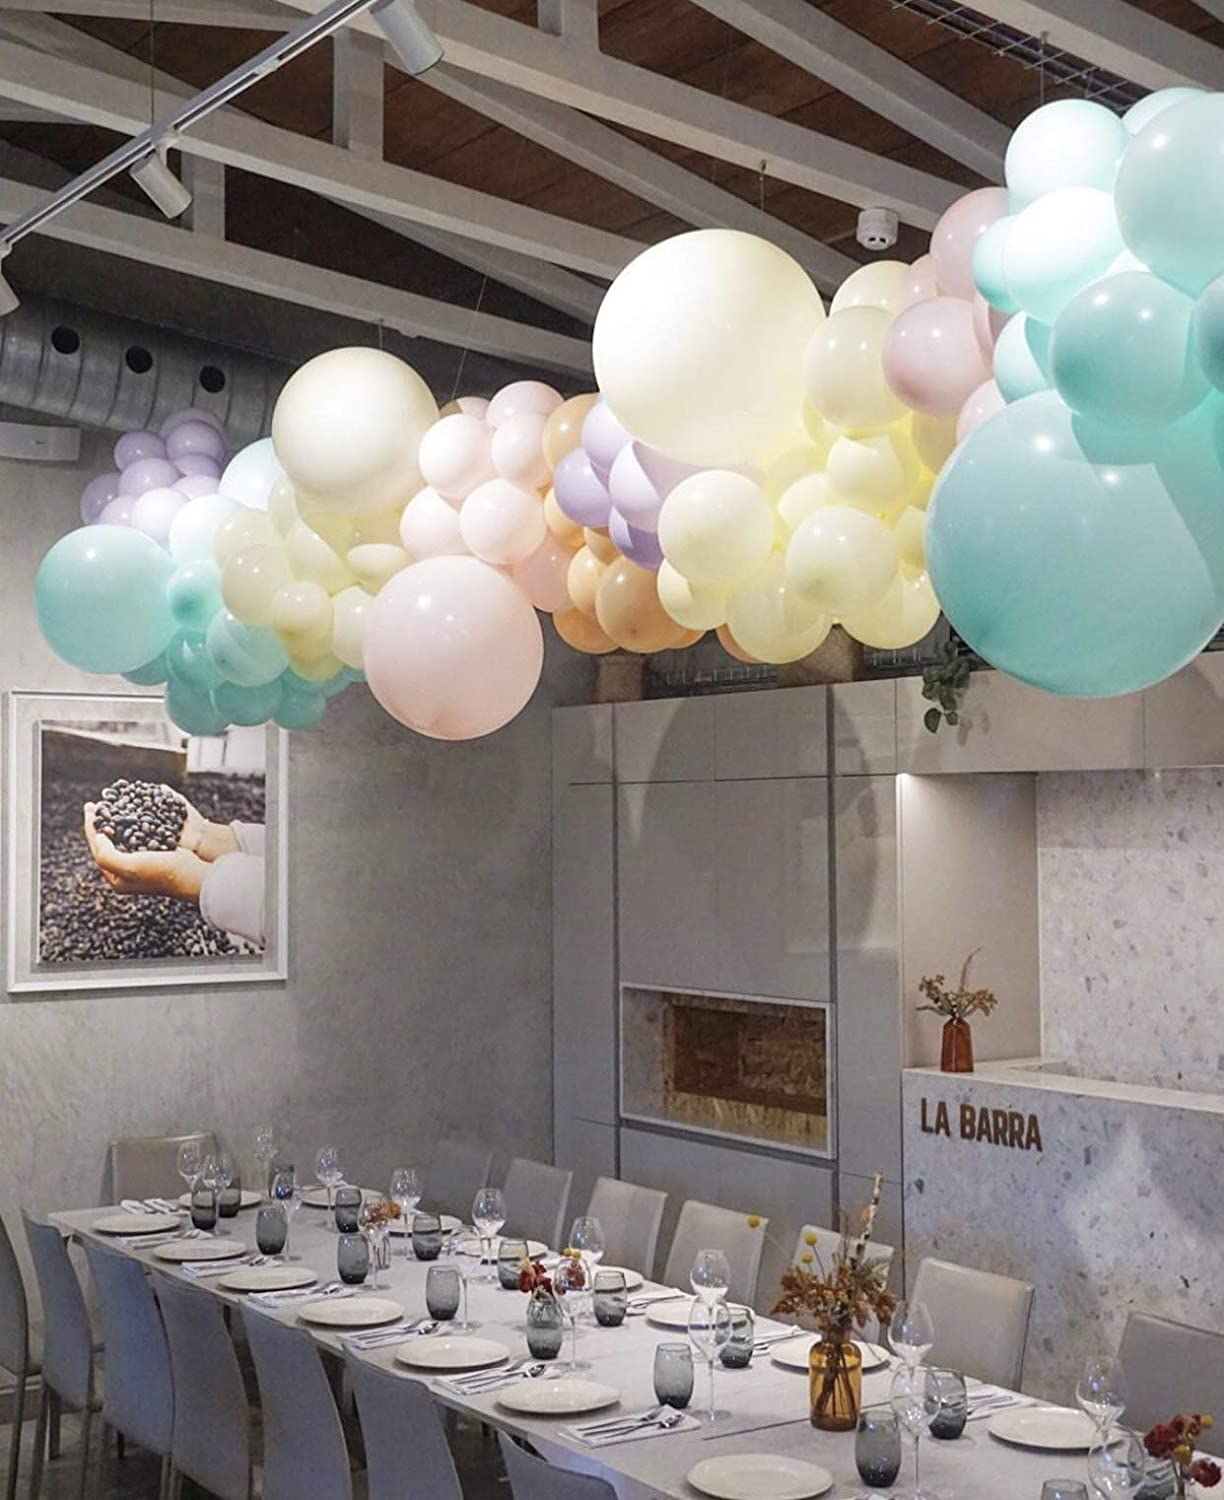 """Pastel Balloon Green//Mint Macaron Balloons 12/"""" 50 Pieces Great for Decorations Parties Birthdays Baby Showers"""